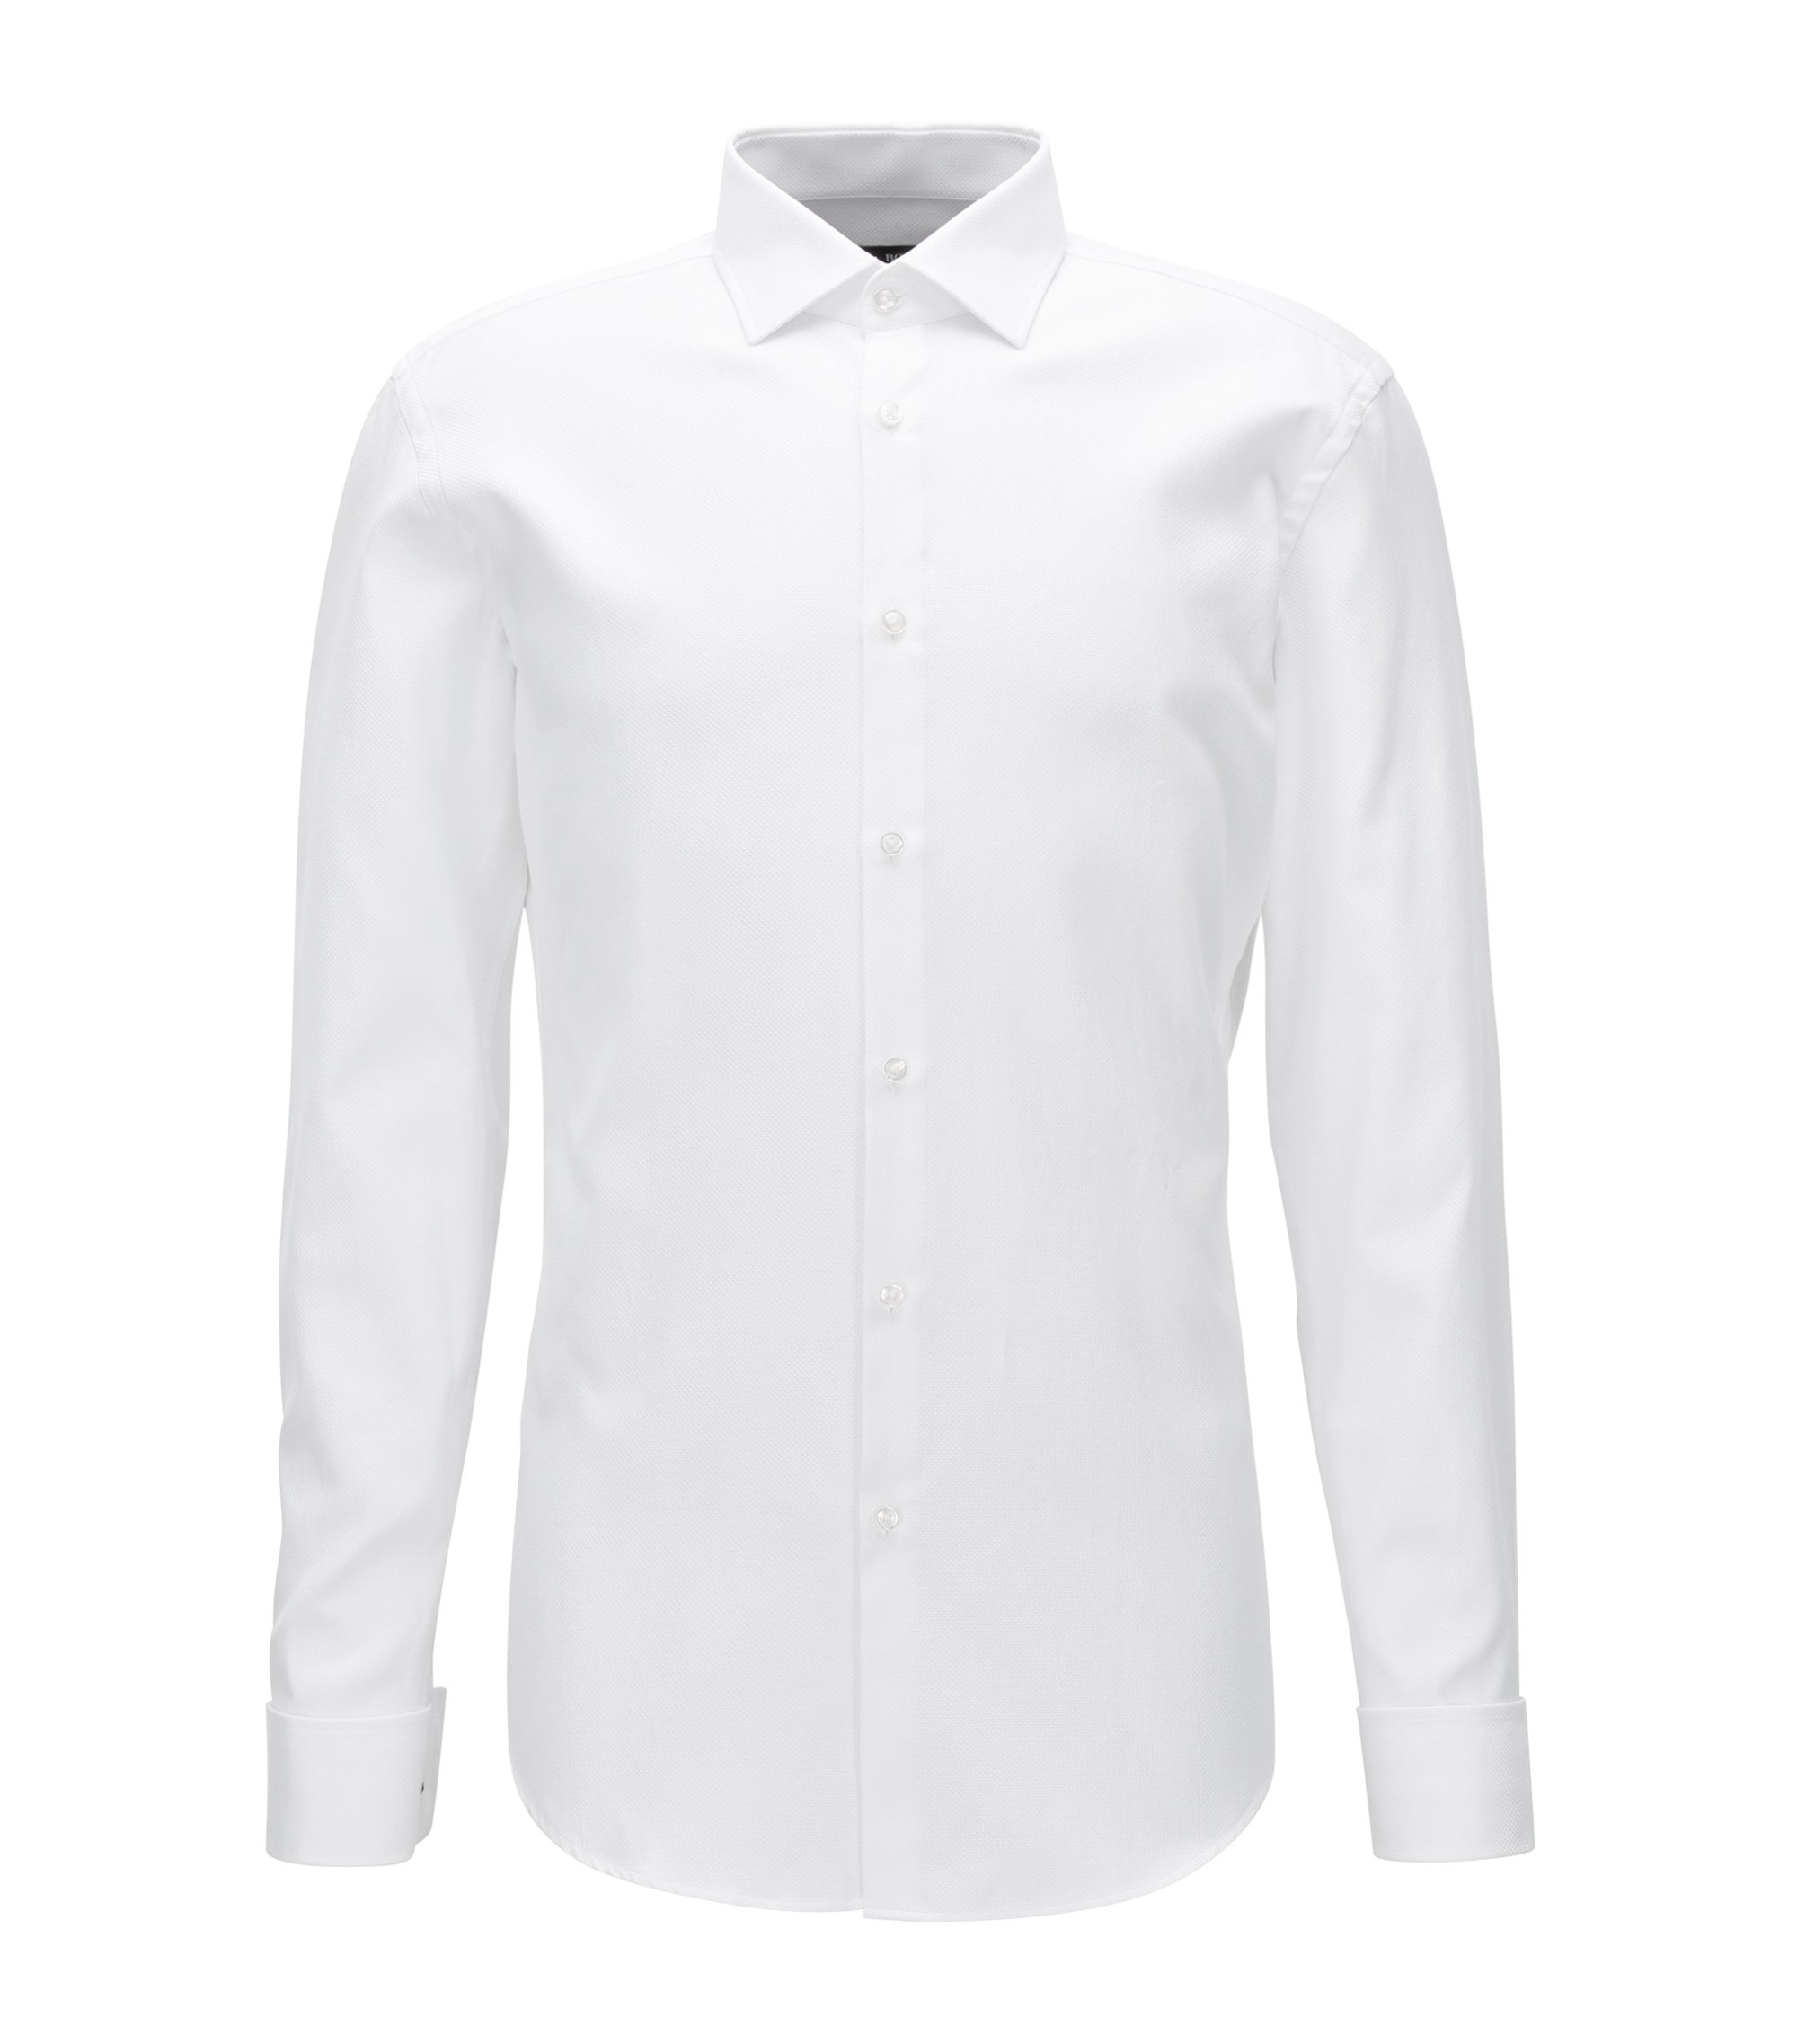 Geometric French Cuff Cotton Dress Shirt, Slim Fit | Jacques, White